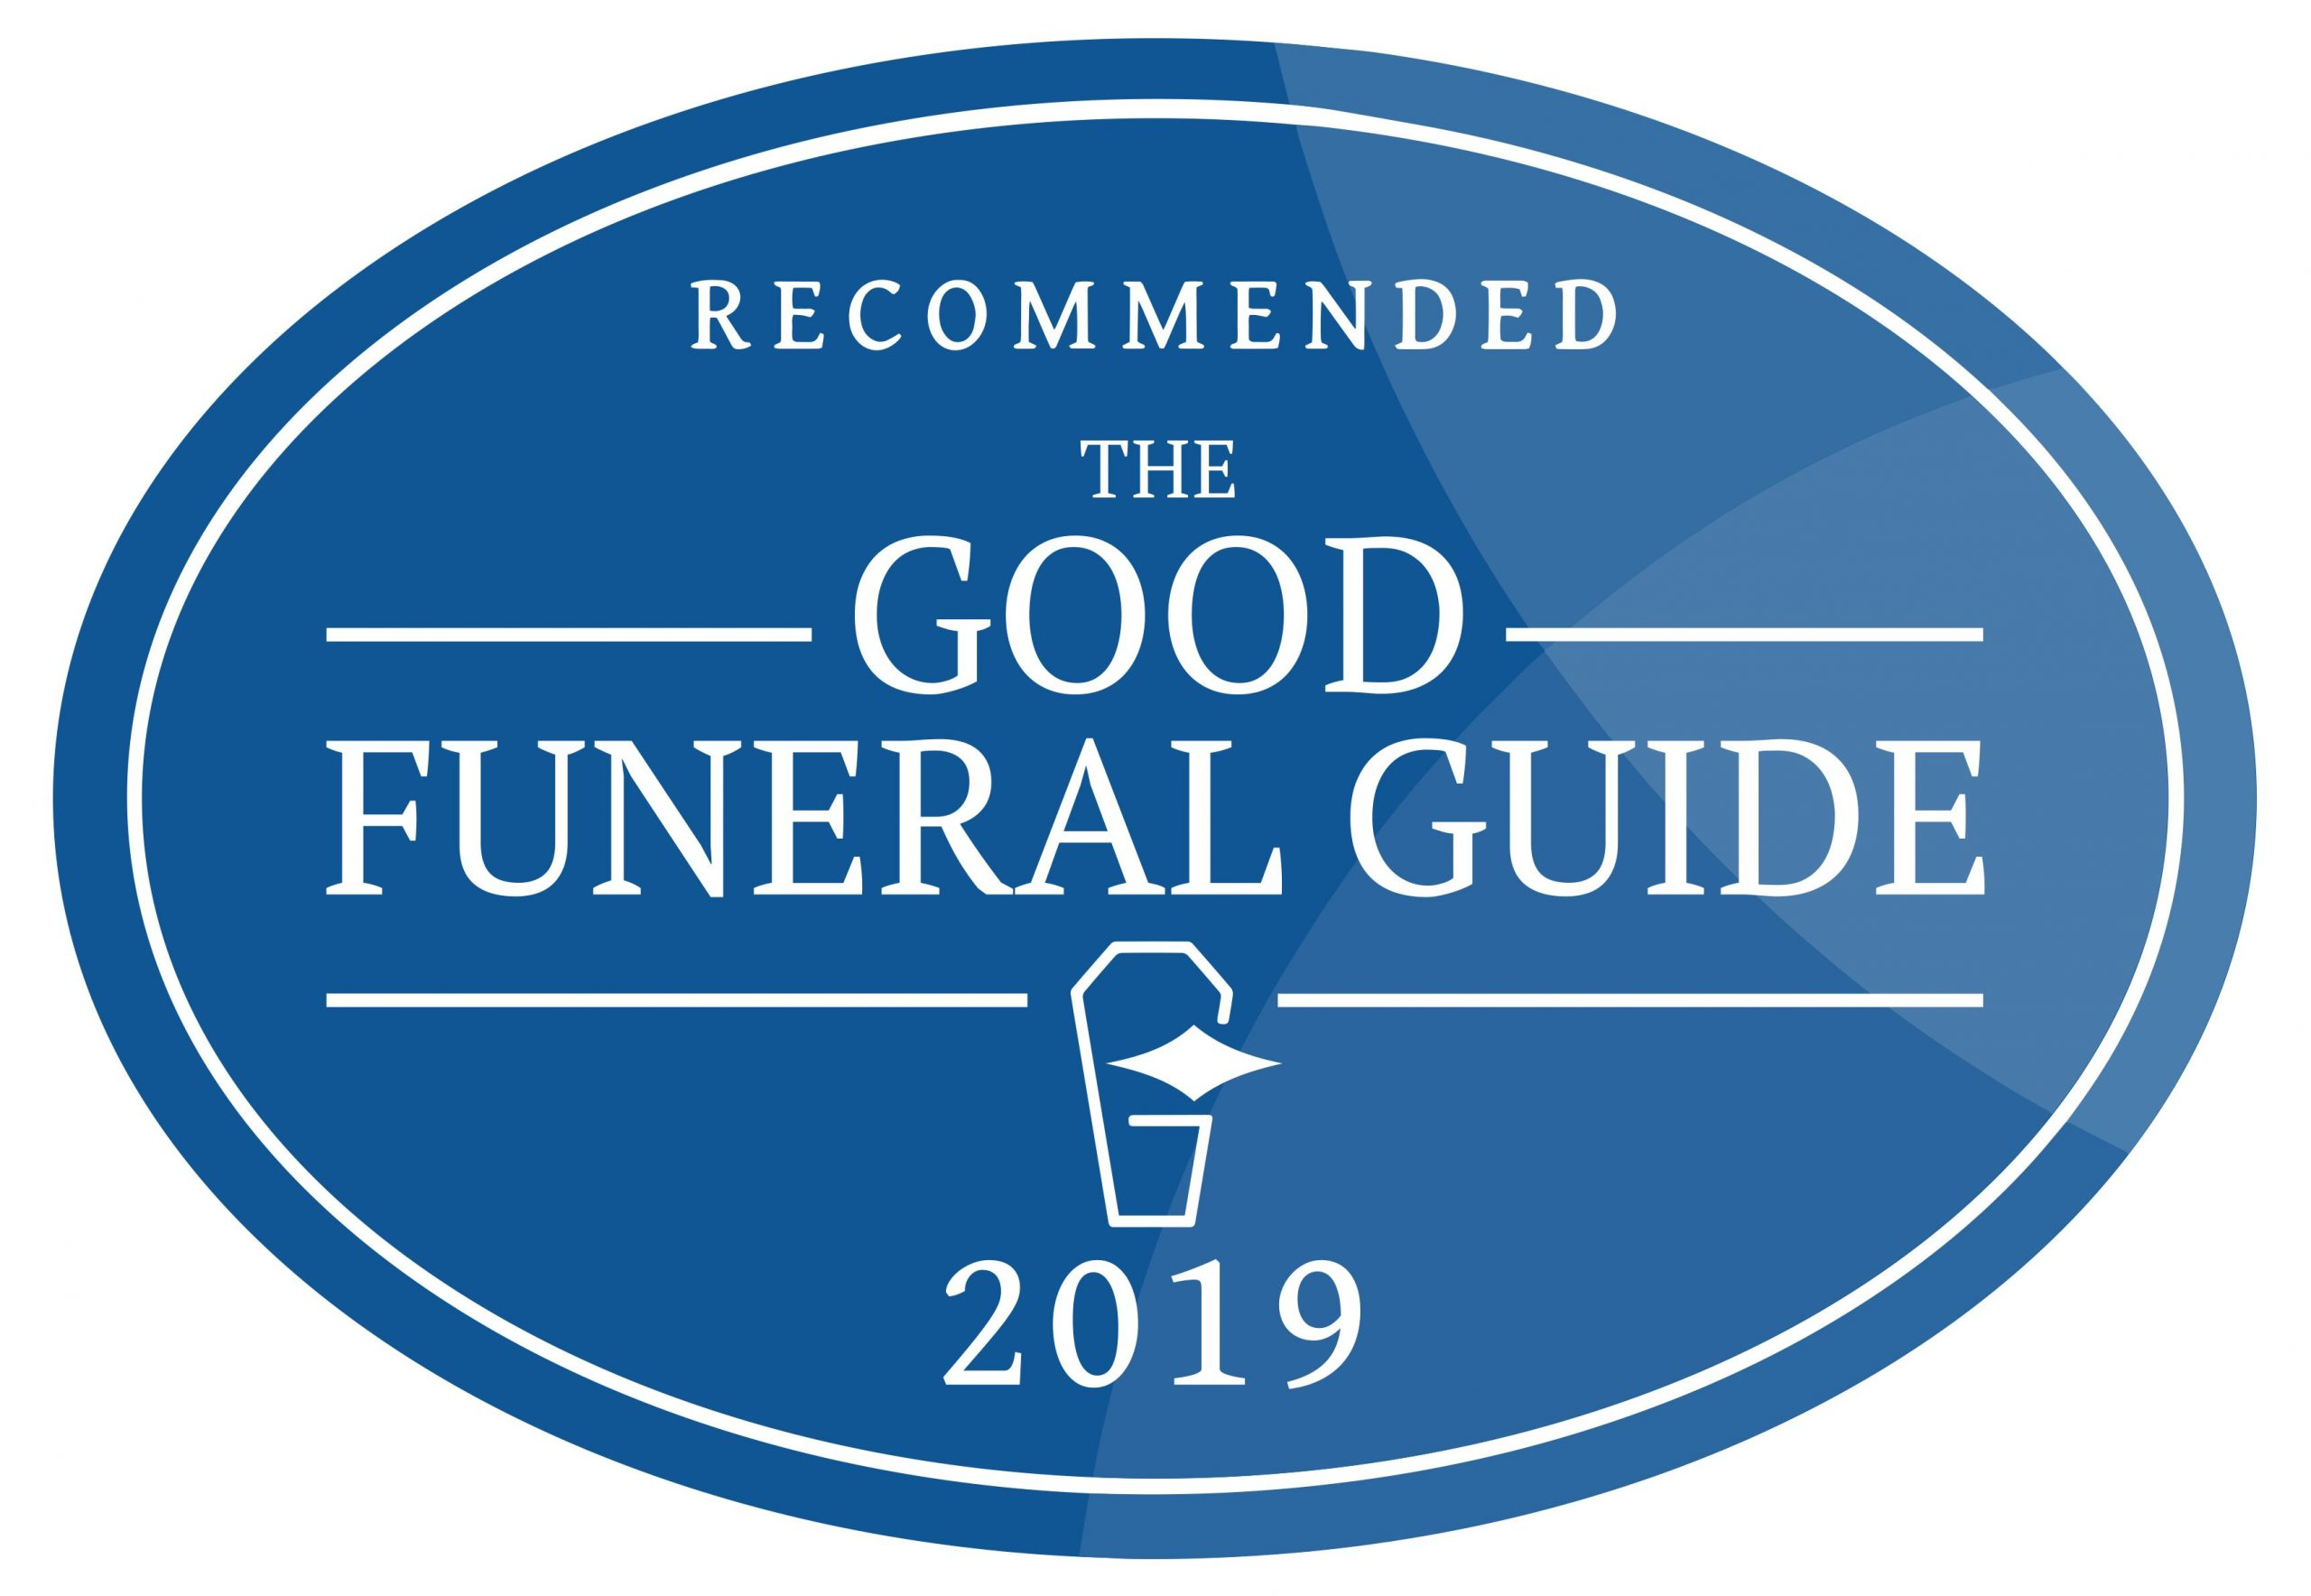 good funeral guide 2019